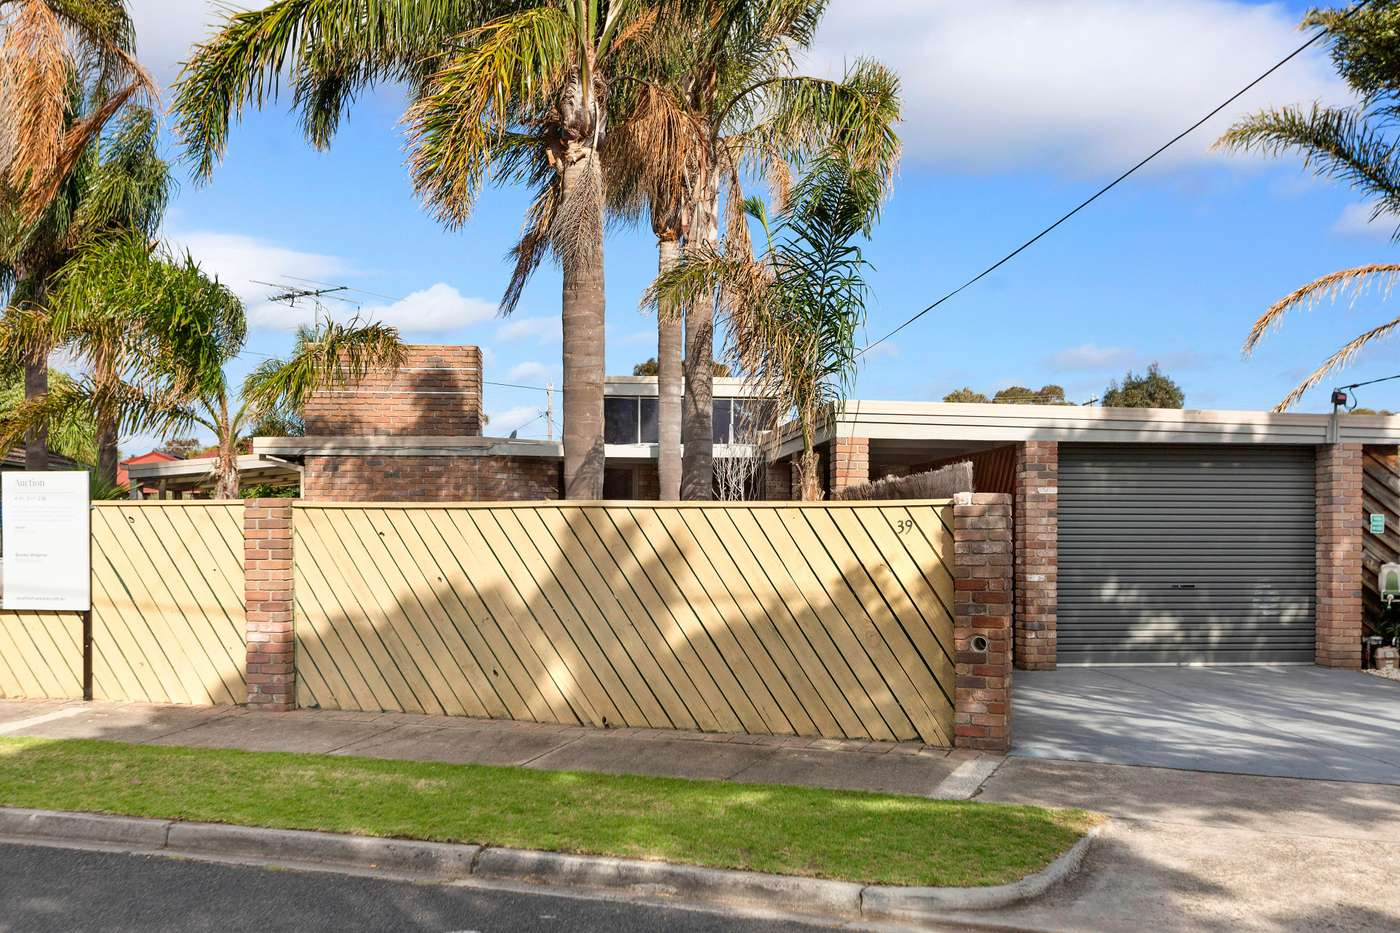 Main view of Homely house listing, 39 Carrington Court, Seaford, VIC 3198